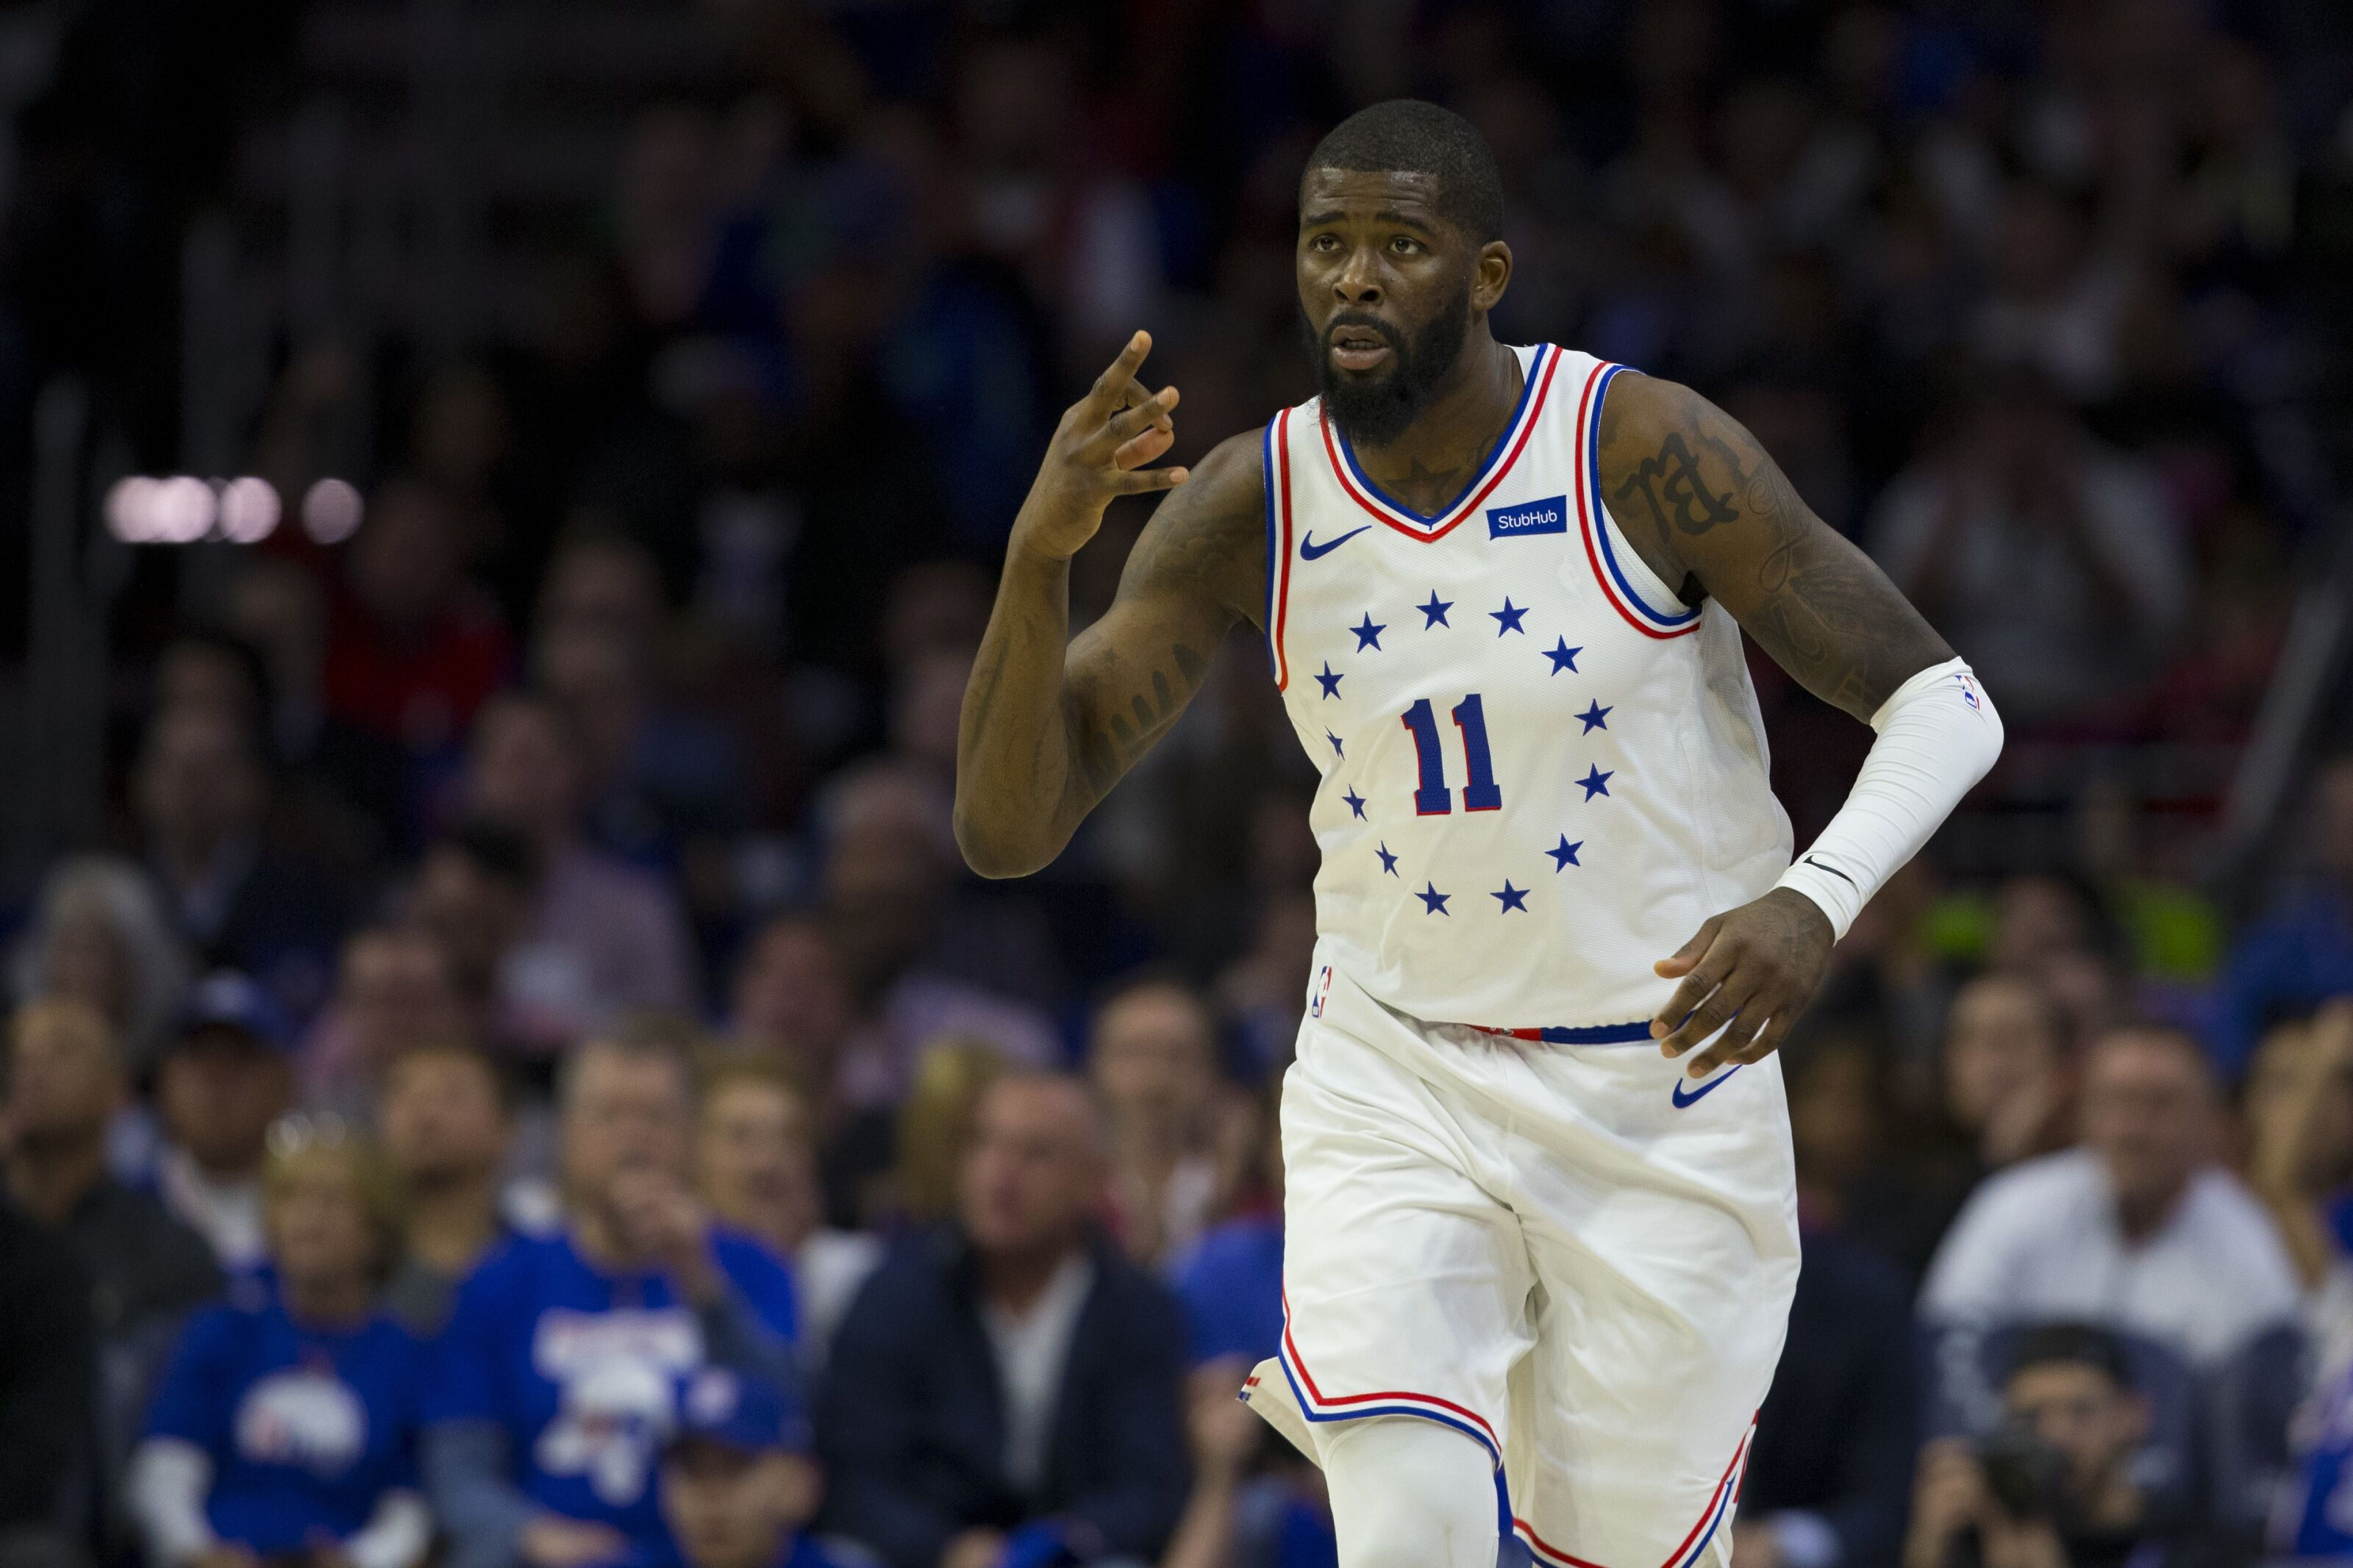 Philadelphia 76ers: James Ennis expected to pursue multi-year contract